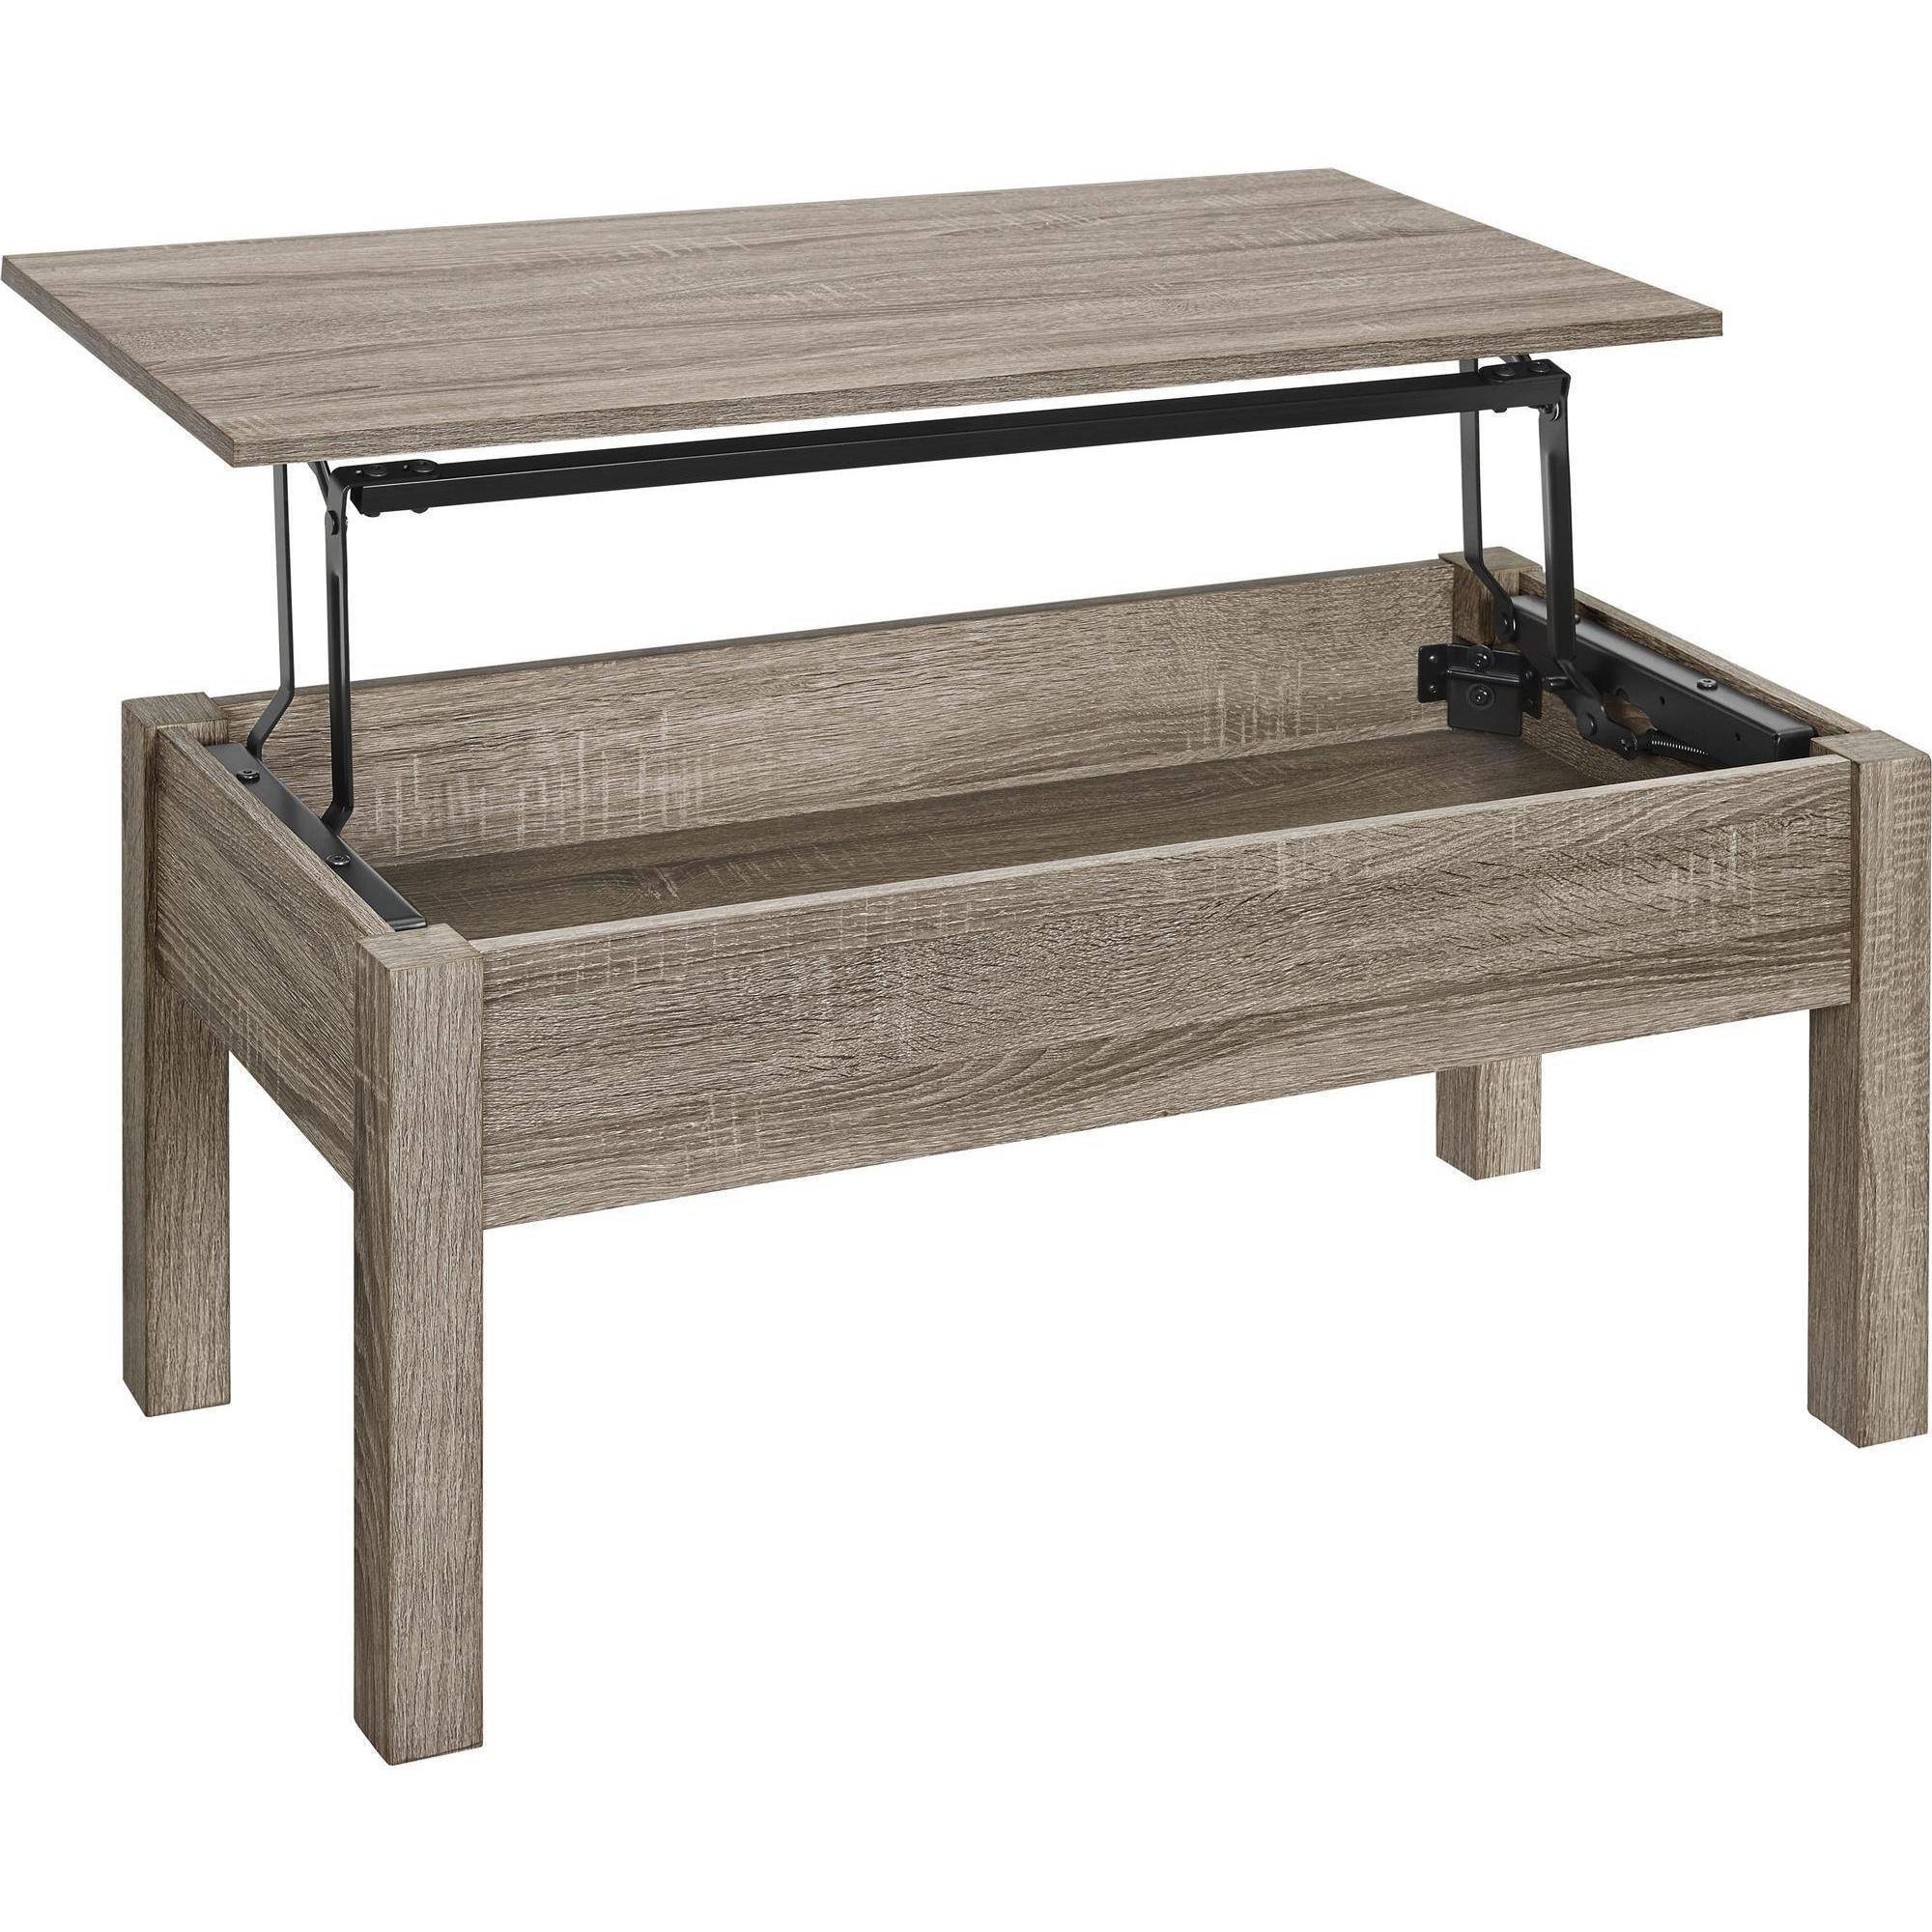 Mainstays Lift-Top Coffee Table, Multiple Colors - Walmart with regard to Coffee Tables With Raisable Top (Image 19 of 30)